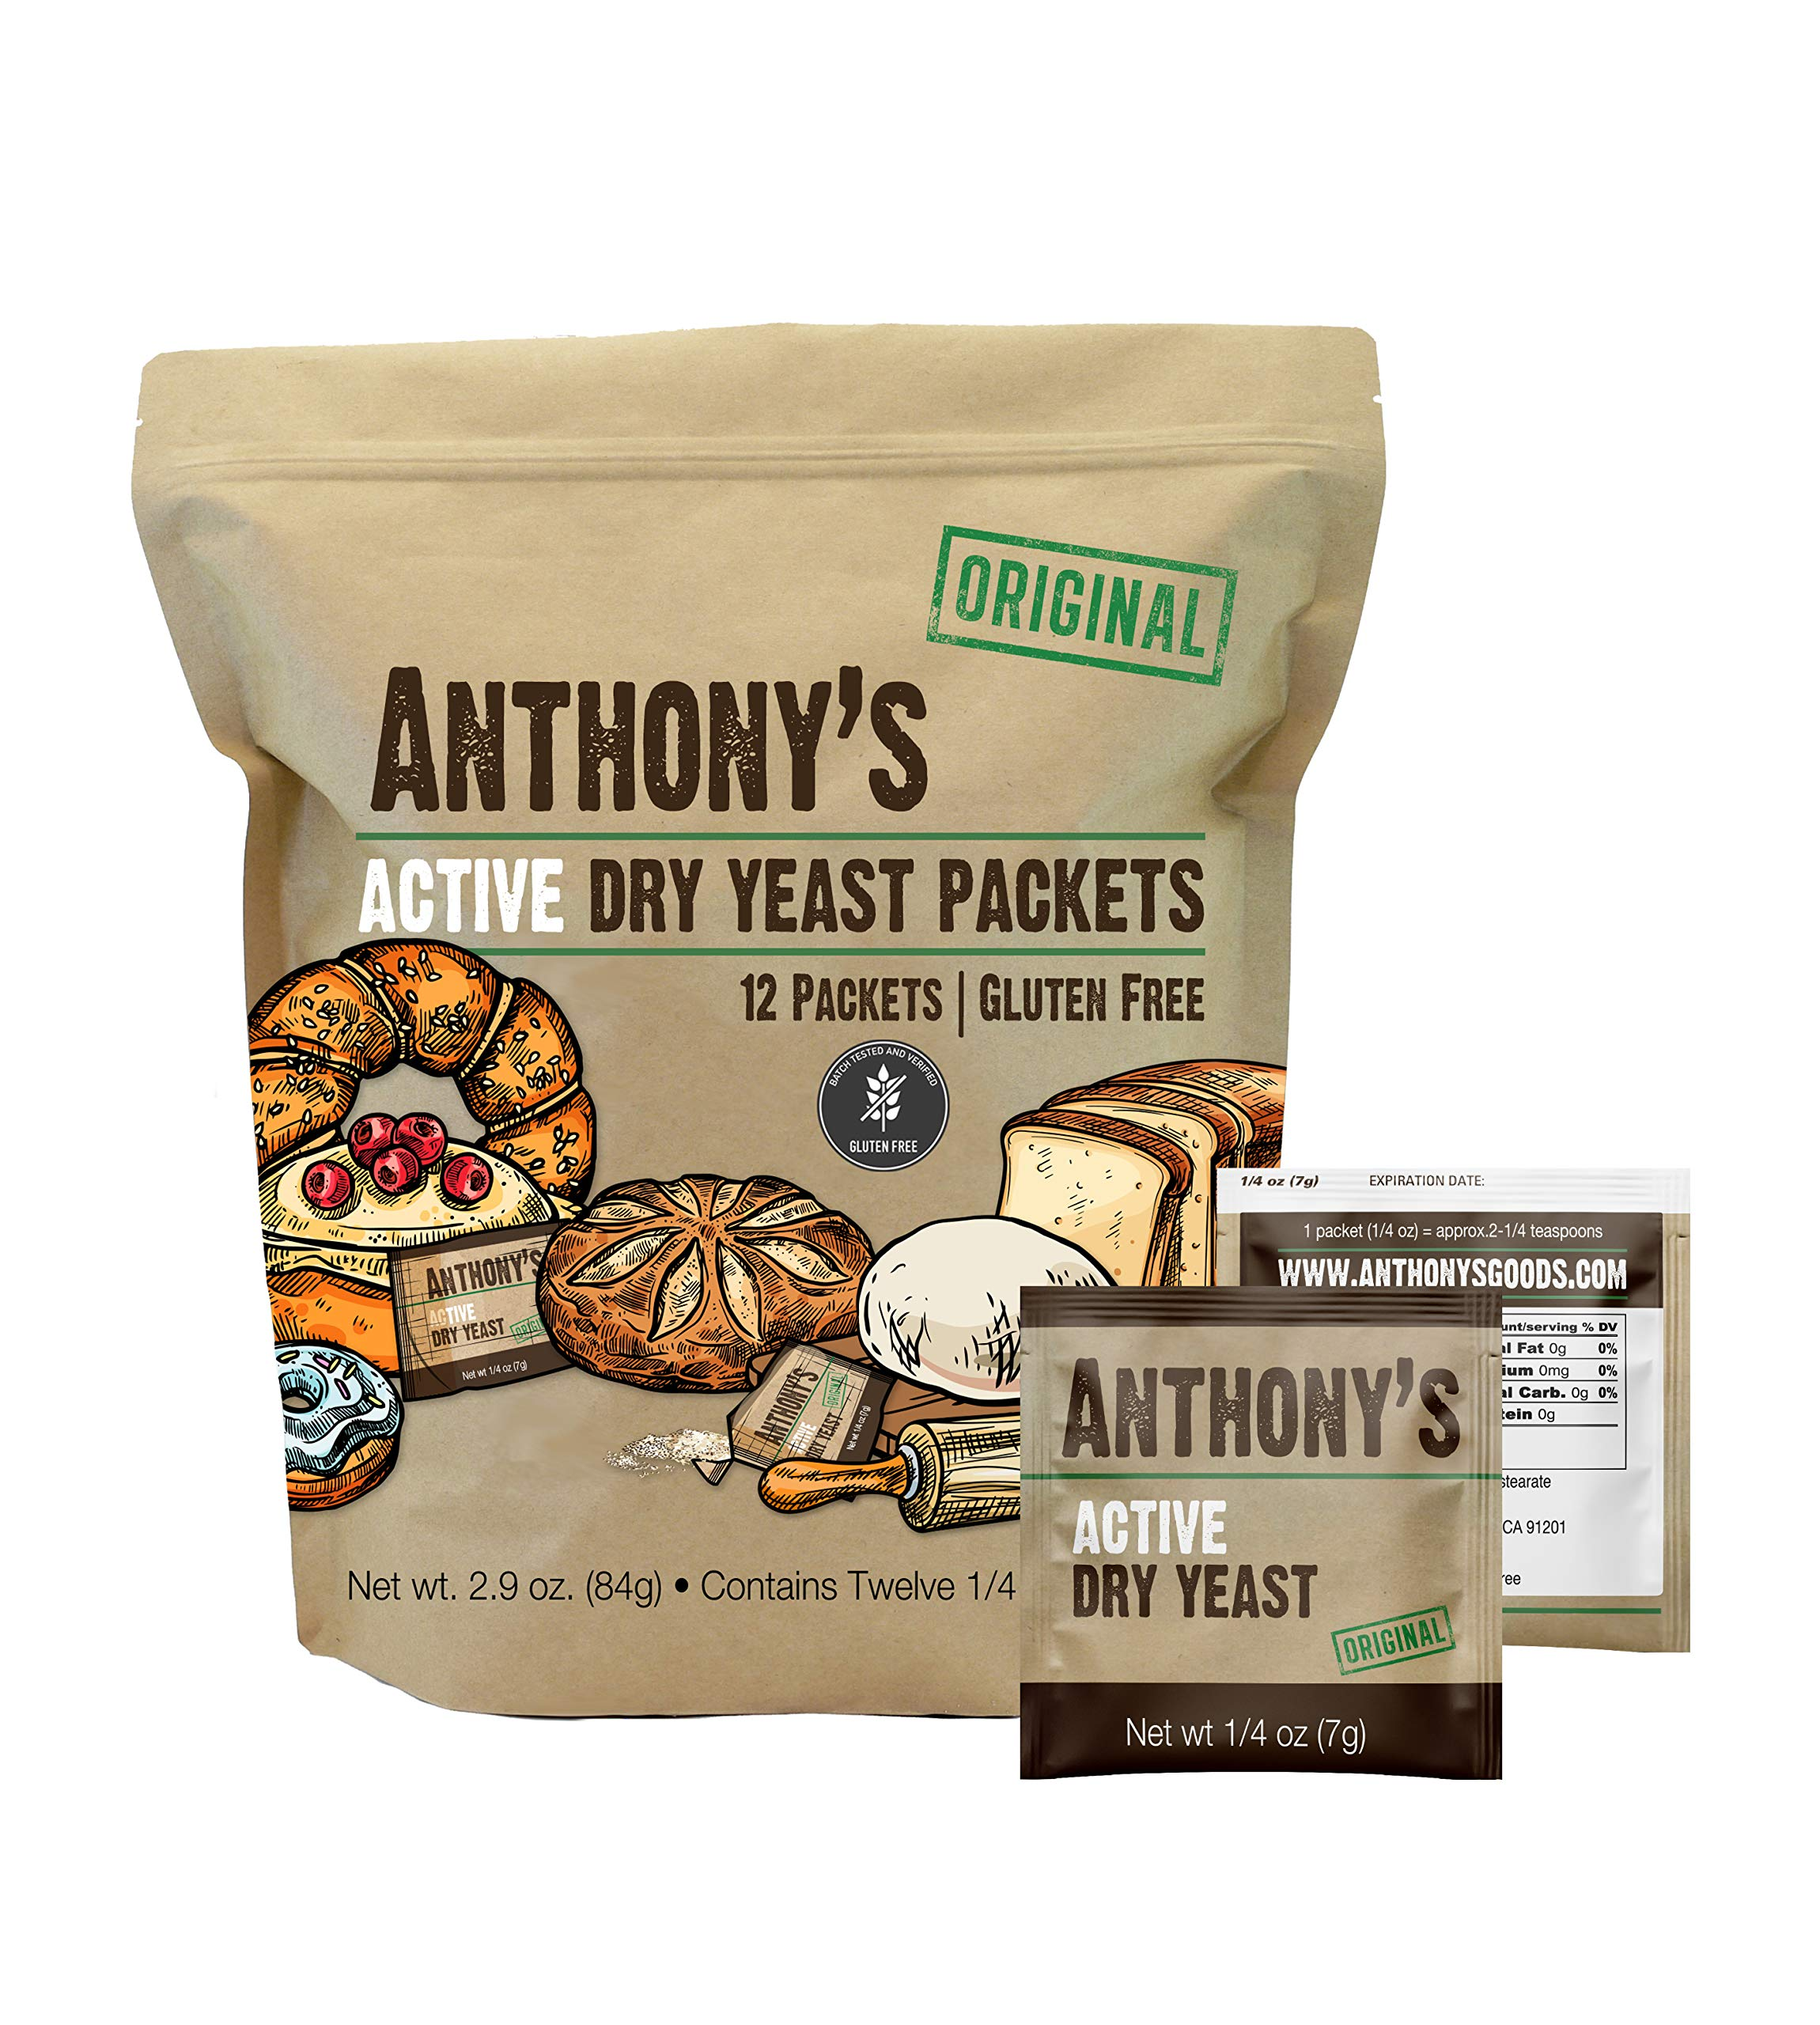 Anthony's Active Dry Yeast Packets, Contains 12 Individual Packets, Gluten Free